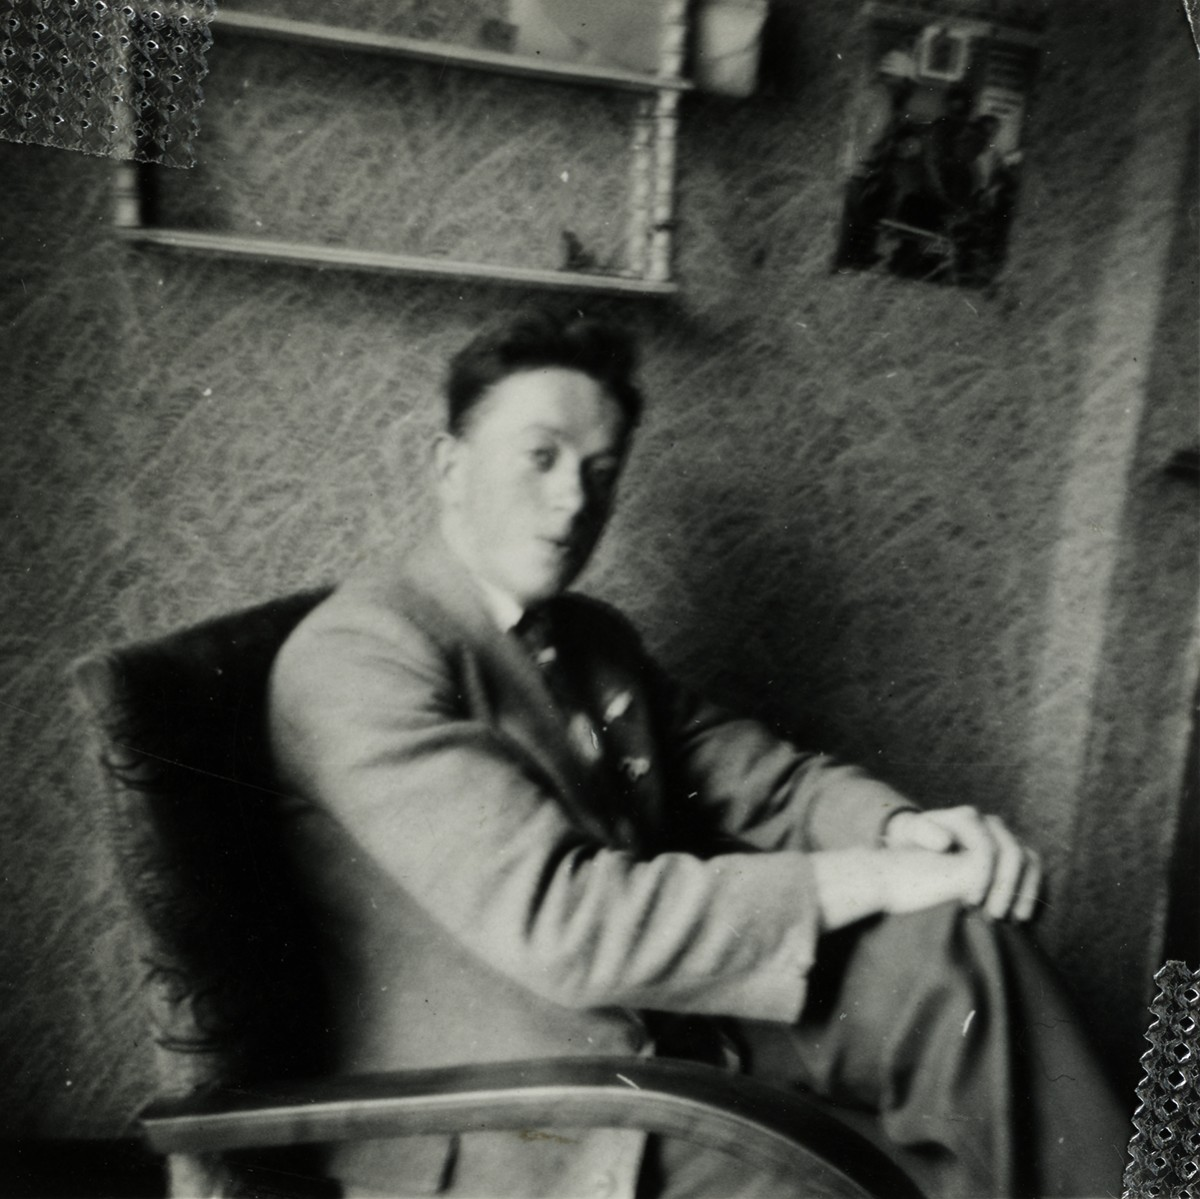 Gilroy  //  County Louth  :: Young man in the 1950's